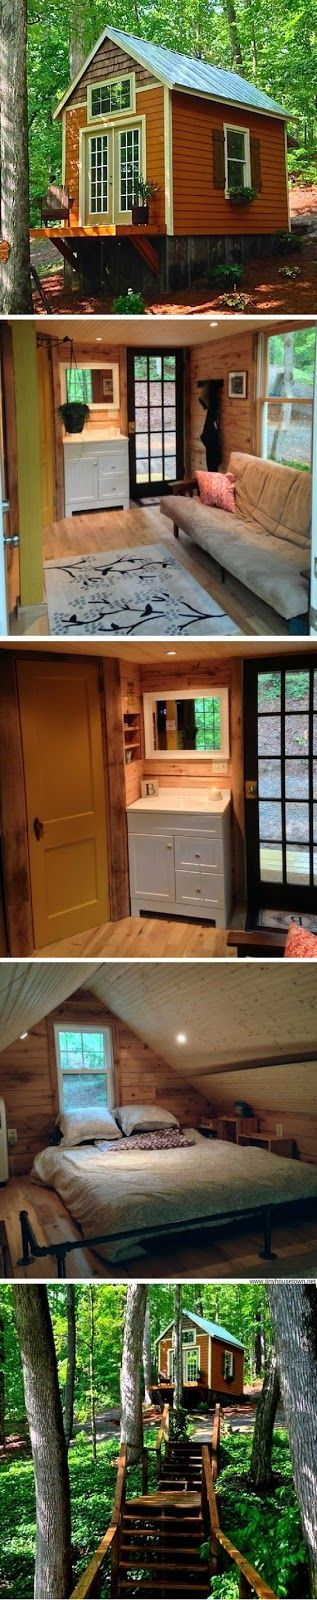 mytinyhousedirectory: The Otter Den From Otter Hollow Designs